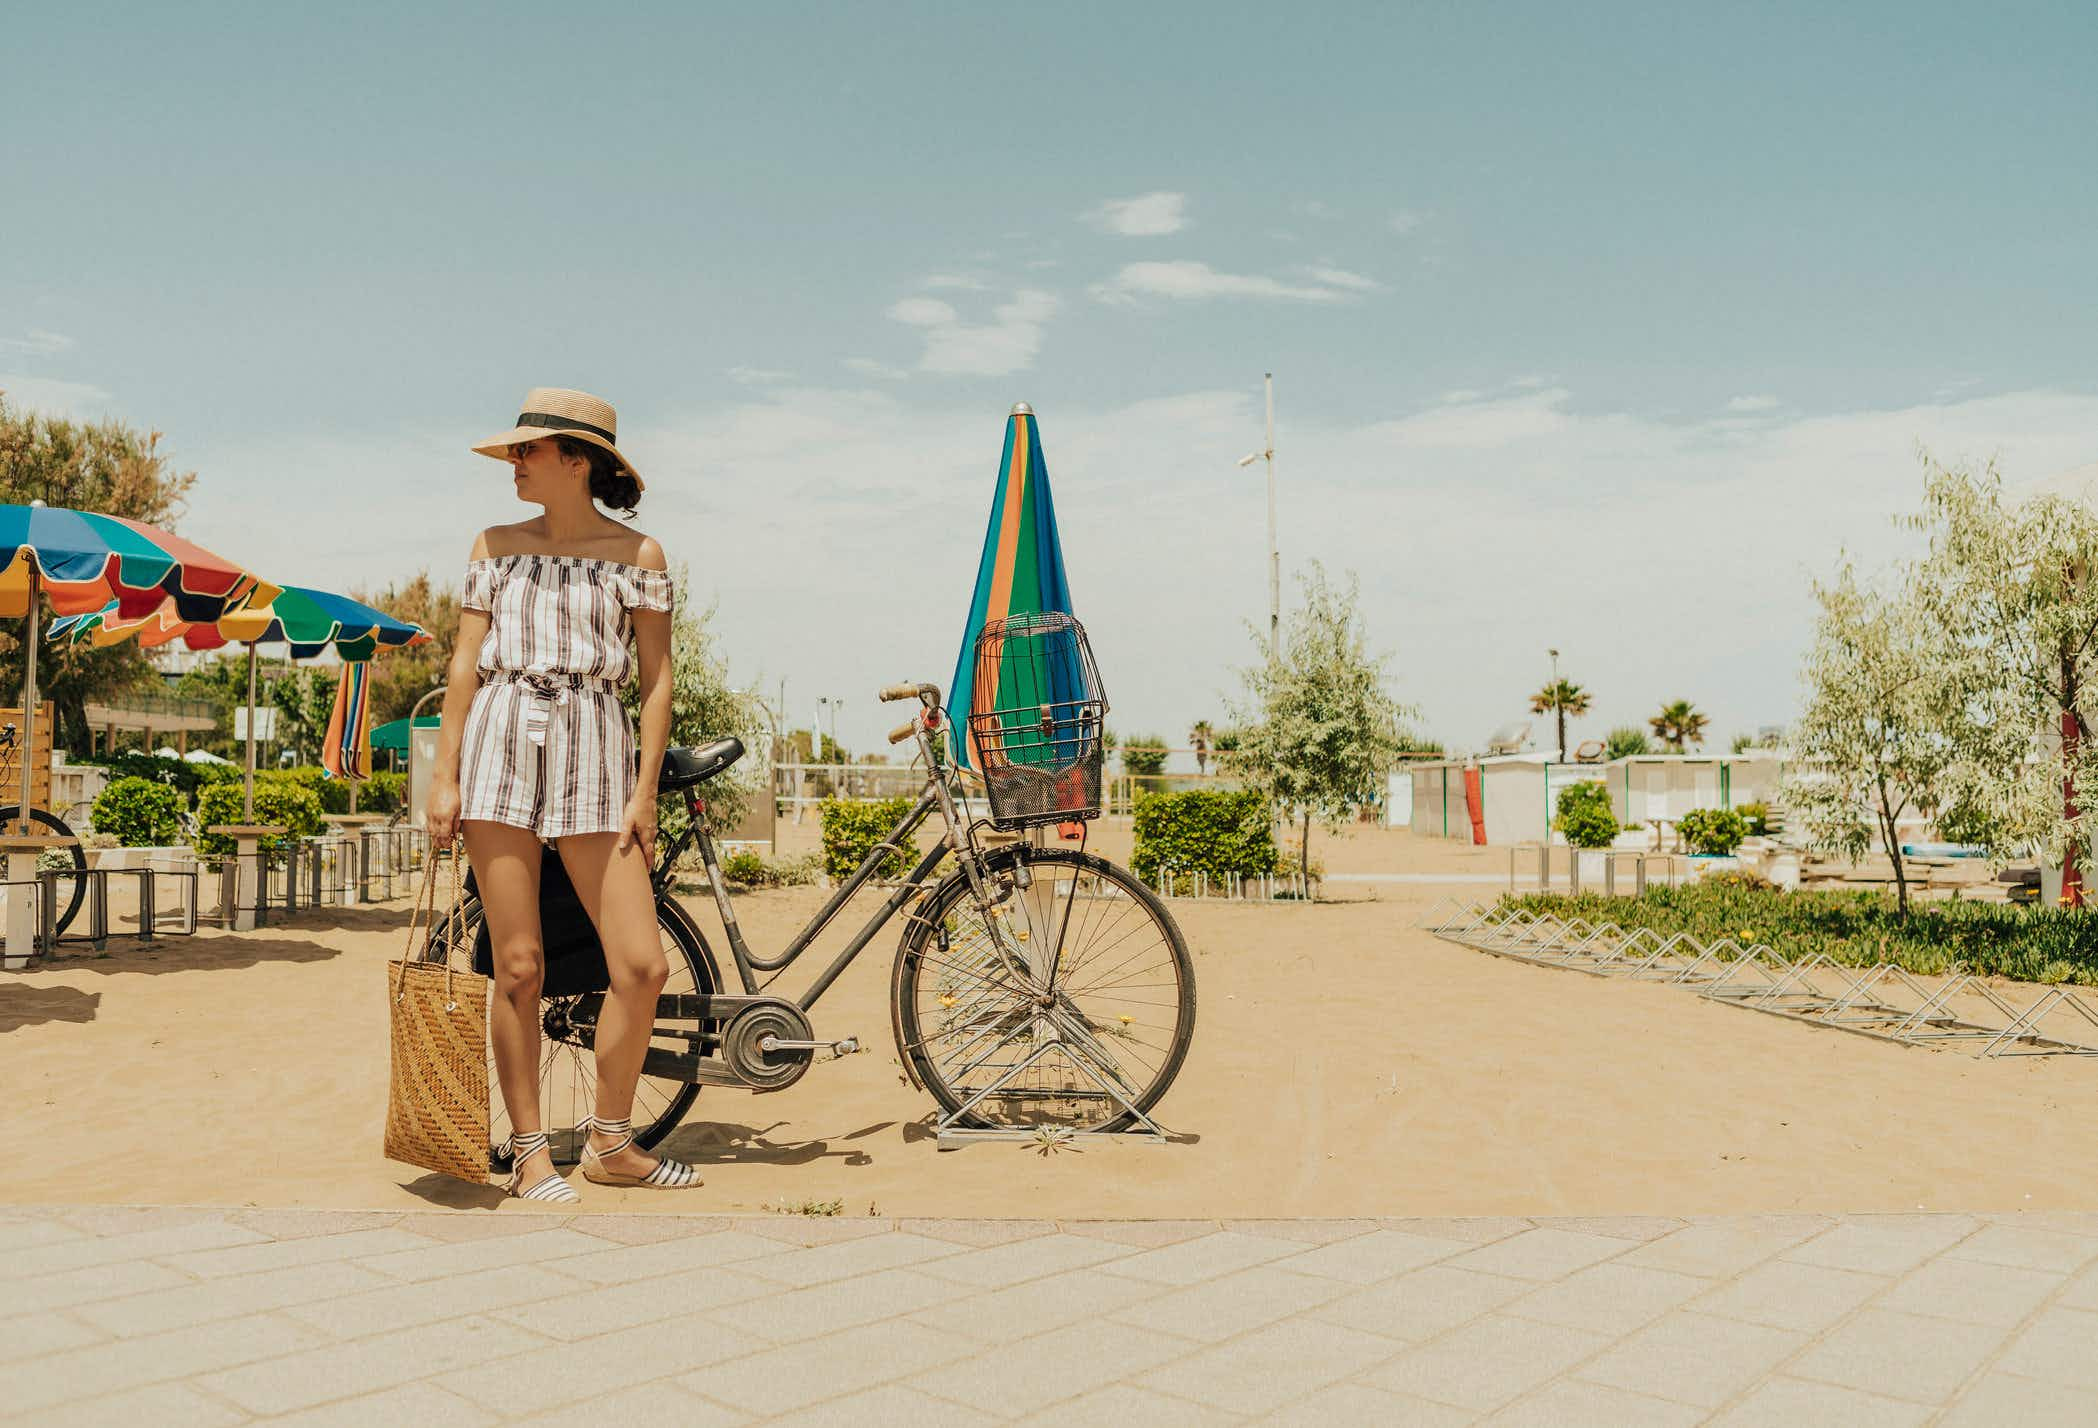 Head to Rimini in Italy for Ulissefest, the Lonely Planet travel festival